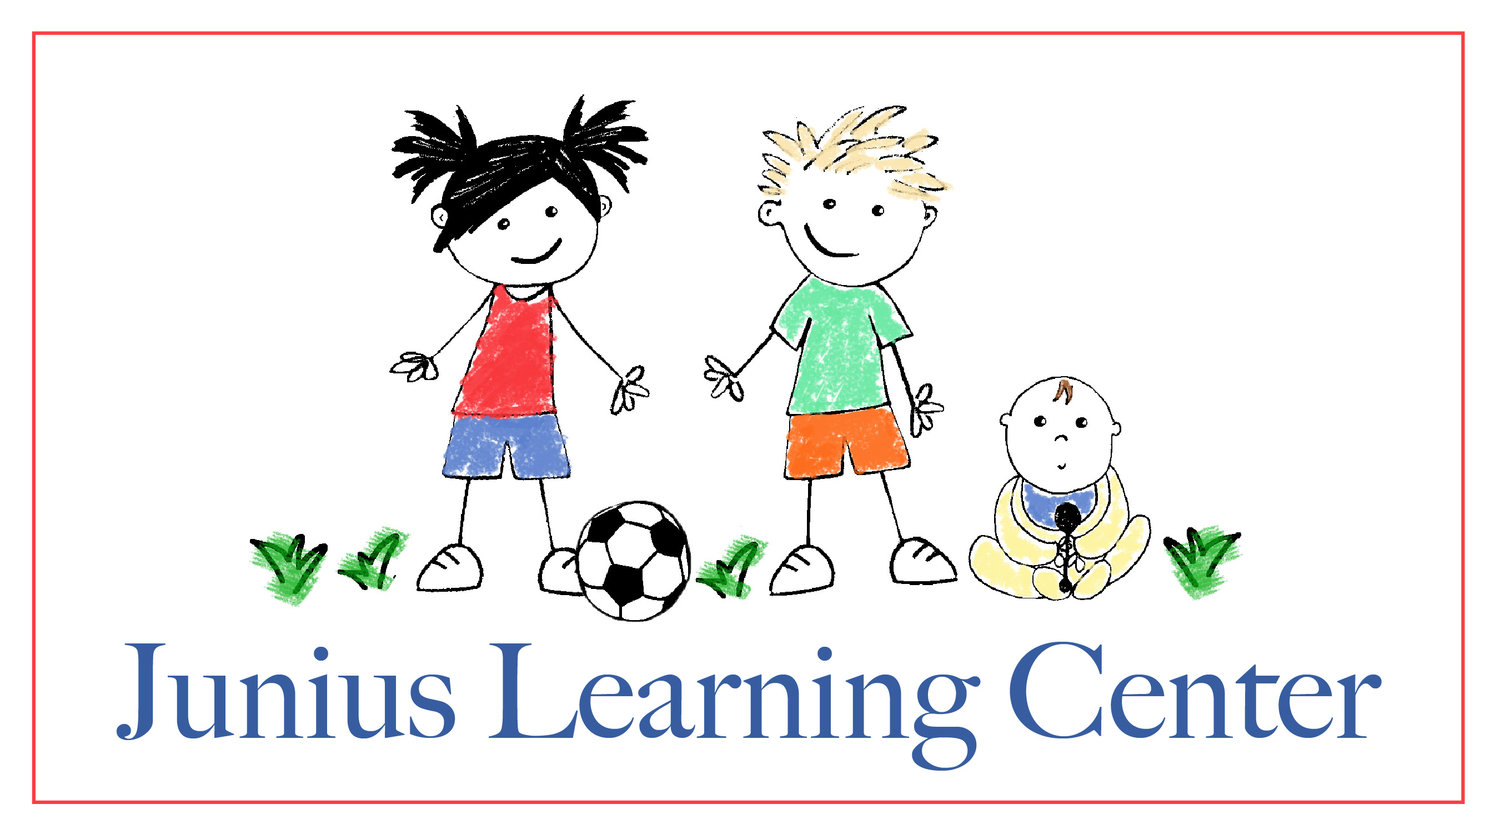 Junius Learning Center